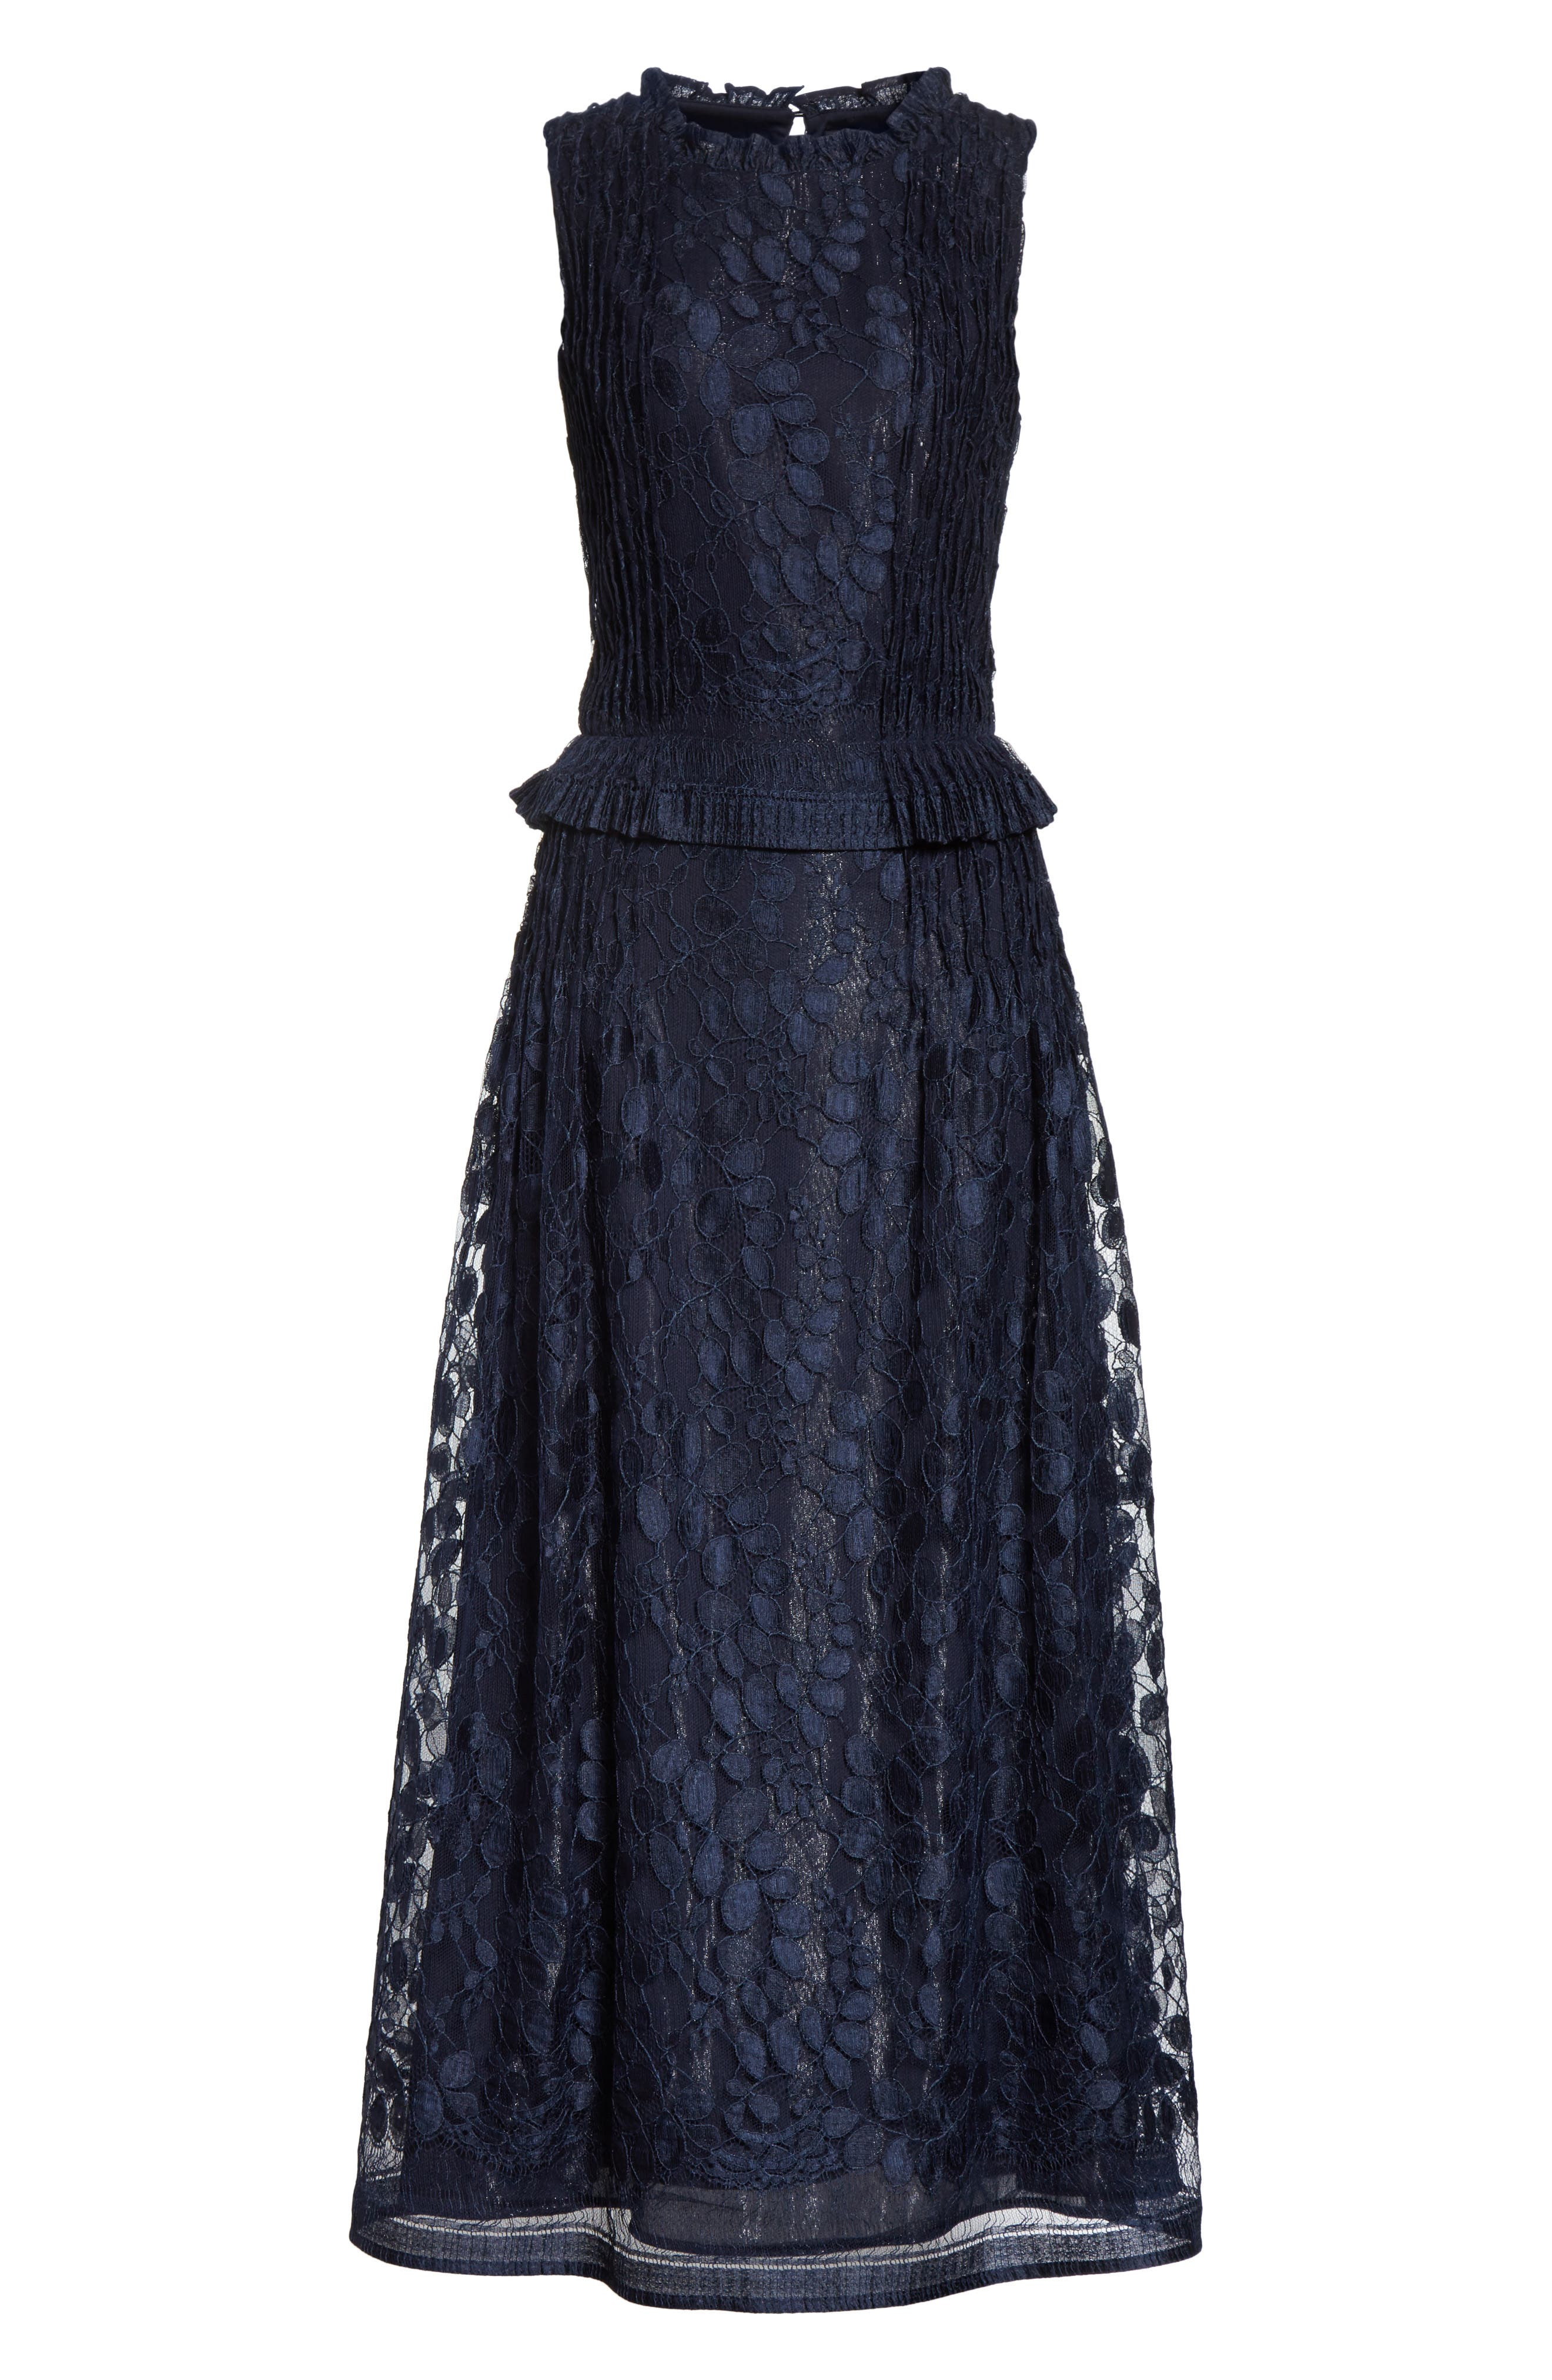 Abstract Leaf Lace midi Dress,                             Alternate thumbnail 7, color,                             Navy